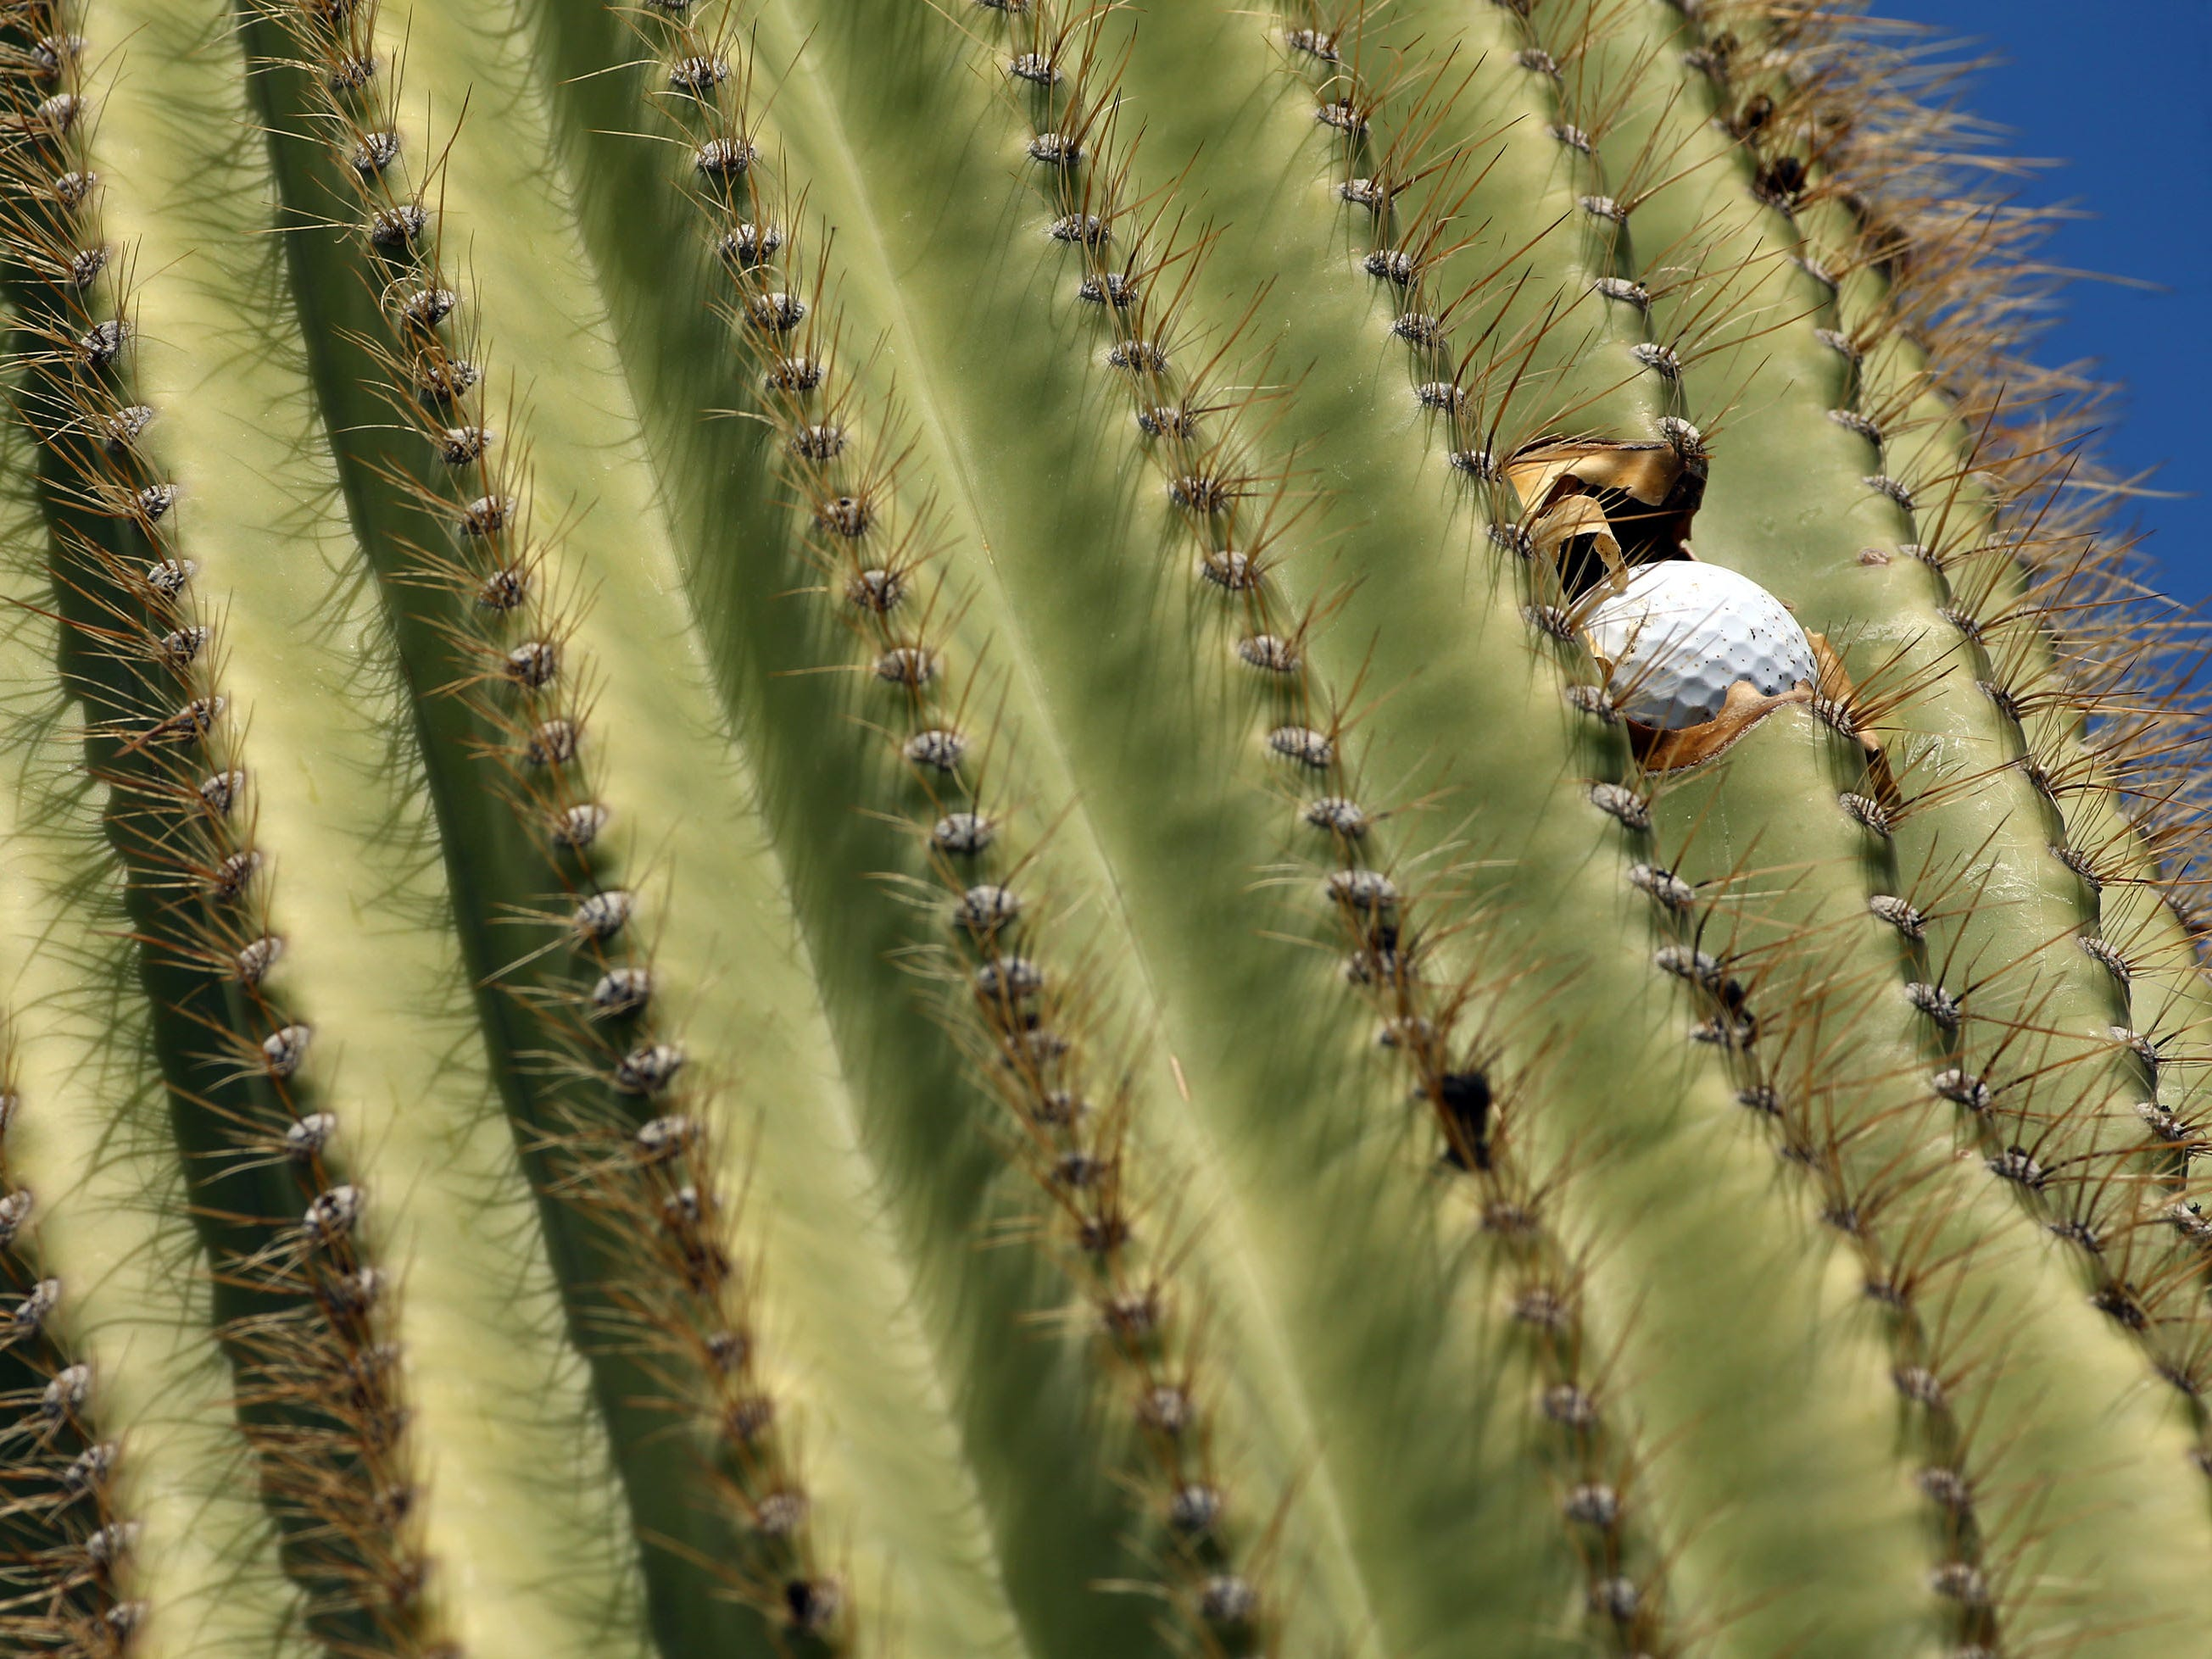 A golf ball is embedded in a saguaro cactus on the second hole at the Bank of Hope Founders Cup on Mar. 24, 2019 at Wildfire Golf Club at JW Marriott in Phoenix, Ariz.